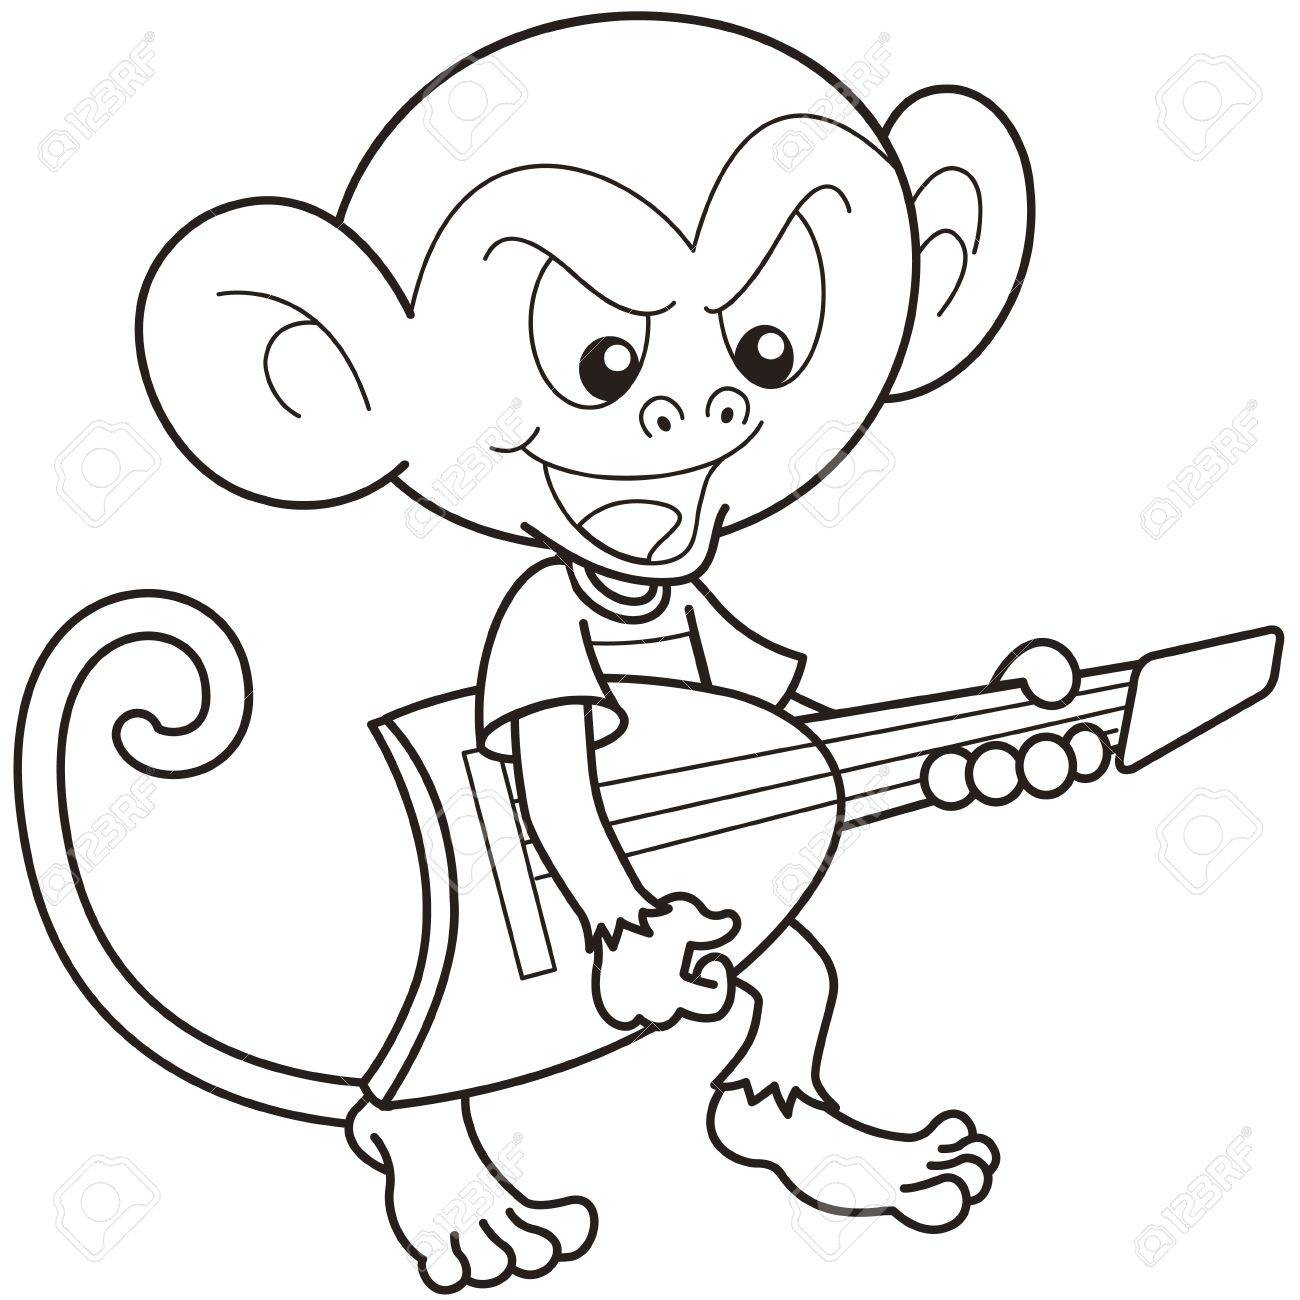 Cartoon Monkey Playing An Electric Guitar Black And White Stock Vector